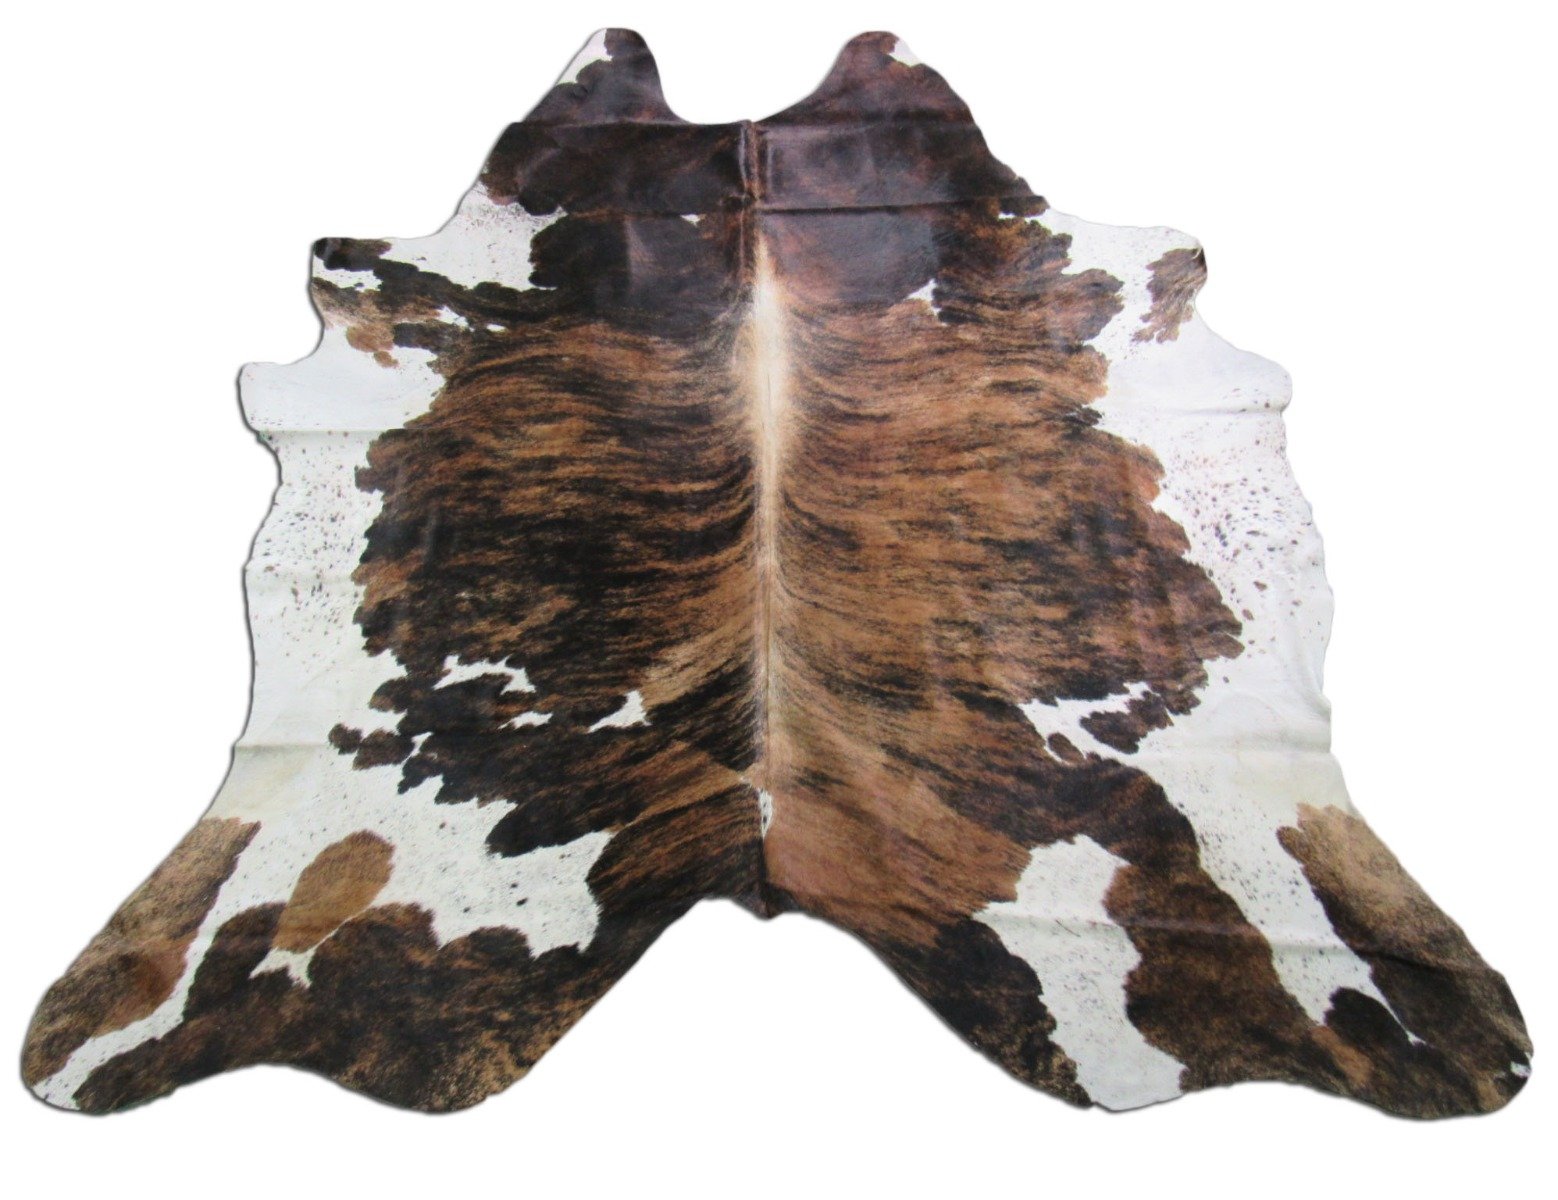 A-1250 Tricolor Speckled Cowhide Rug Size: 7 1/2' X 7 1/2'